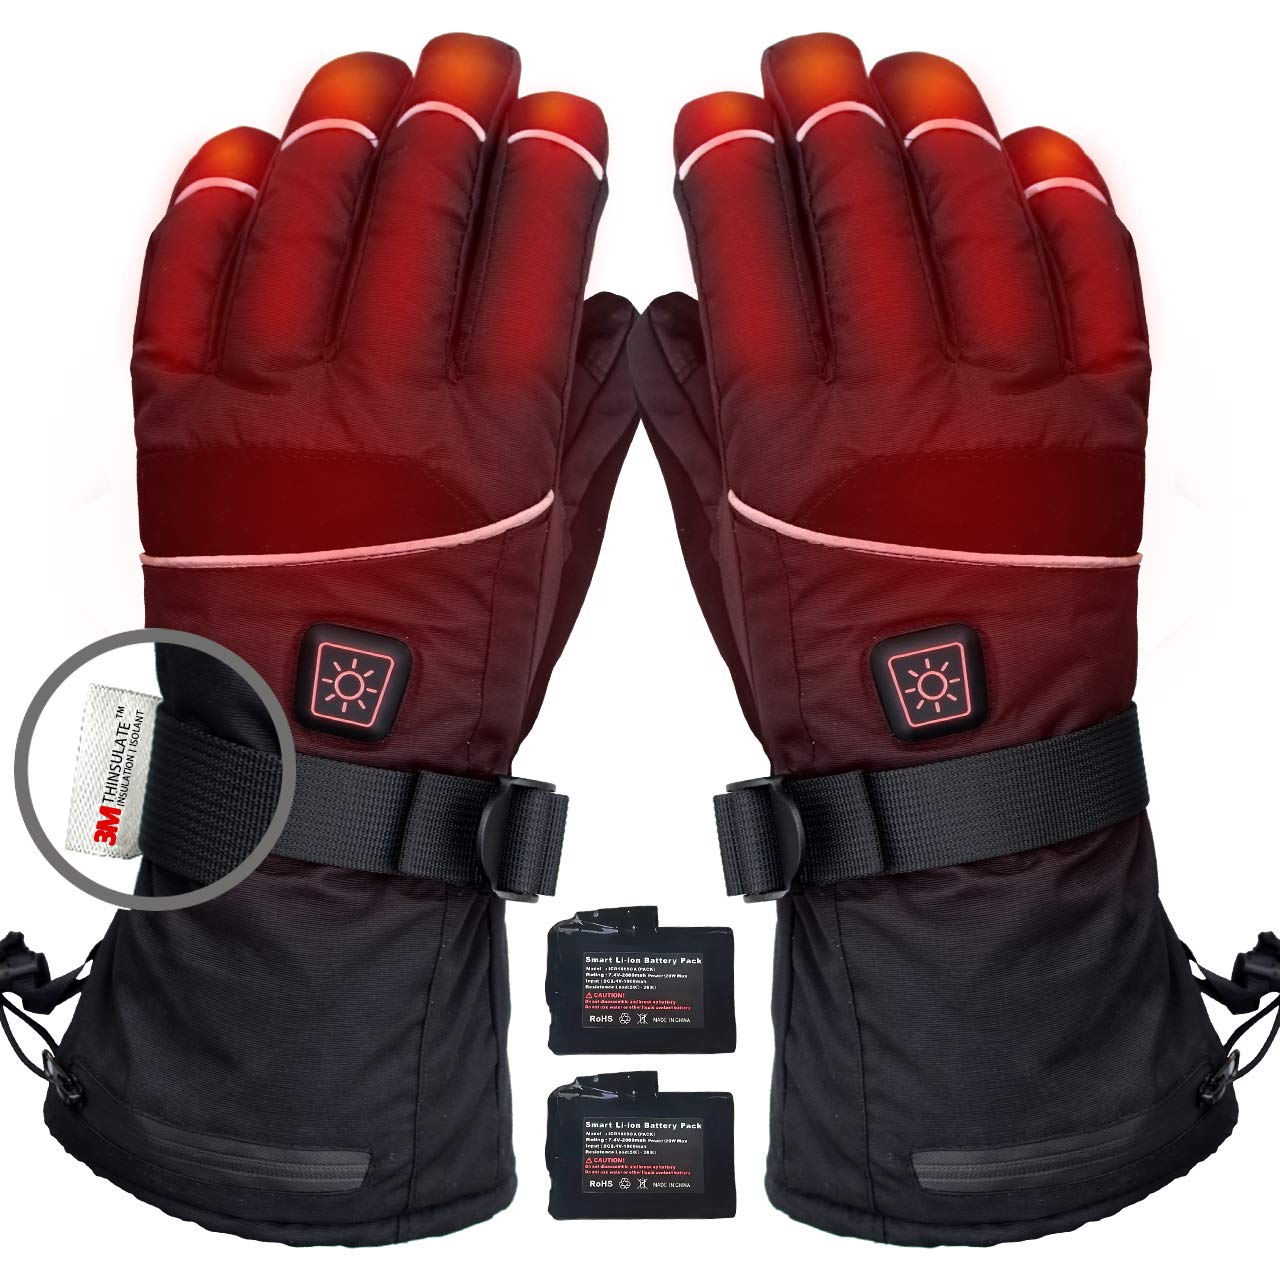 CREATRILL Heated Gloves w/Rechargeable 7.4V Batteries for Men and Women Cycling Motorcycle Hiking Skiing Hunting Fishing, Winter Hand Warmer Relief Arthritis Reynaud's by CREATRILL